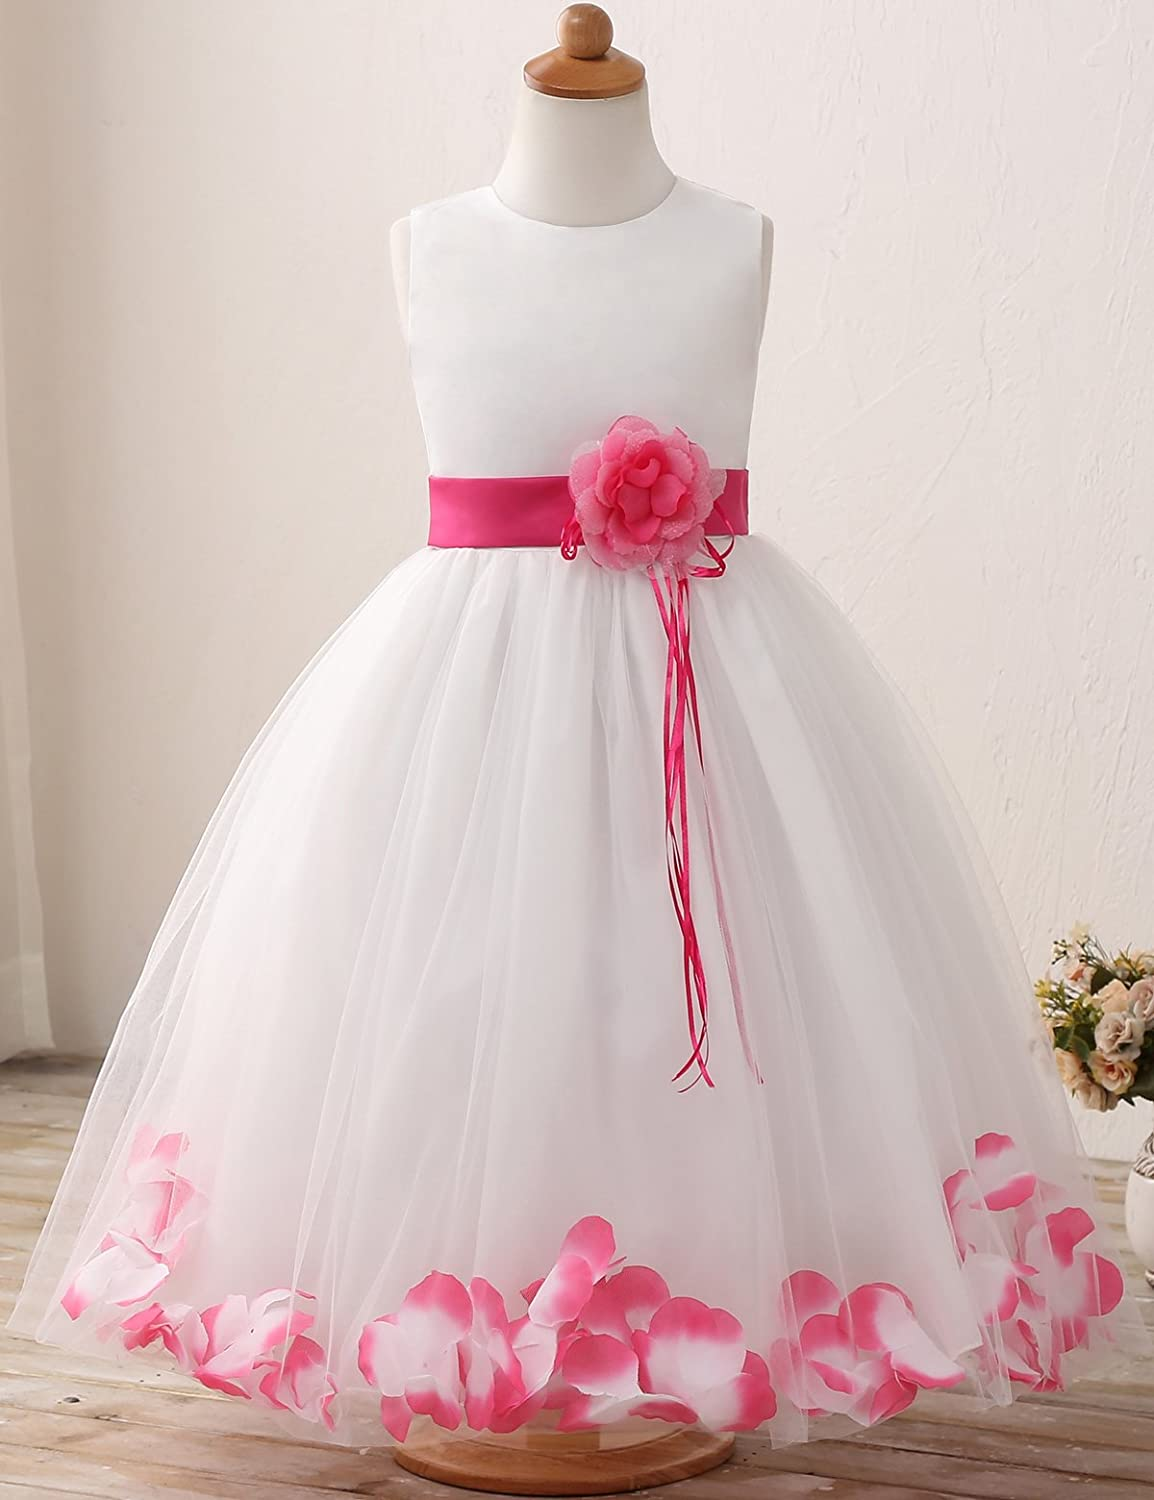 31a5ec7b6cd NNJXD Girl Tutu Flower Petals Bow Bridal Dress for Toddler Girl Size 3-4  Years Big Rose Red  Amazon.in  Clothing   Accessories